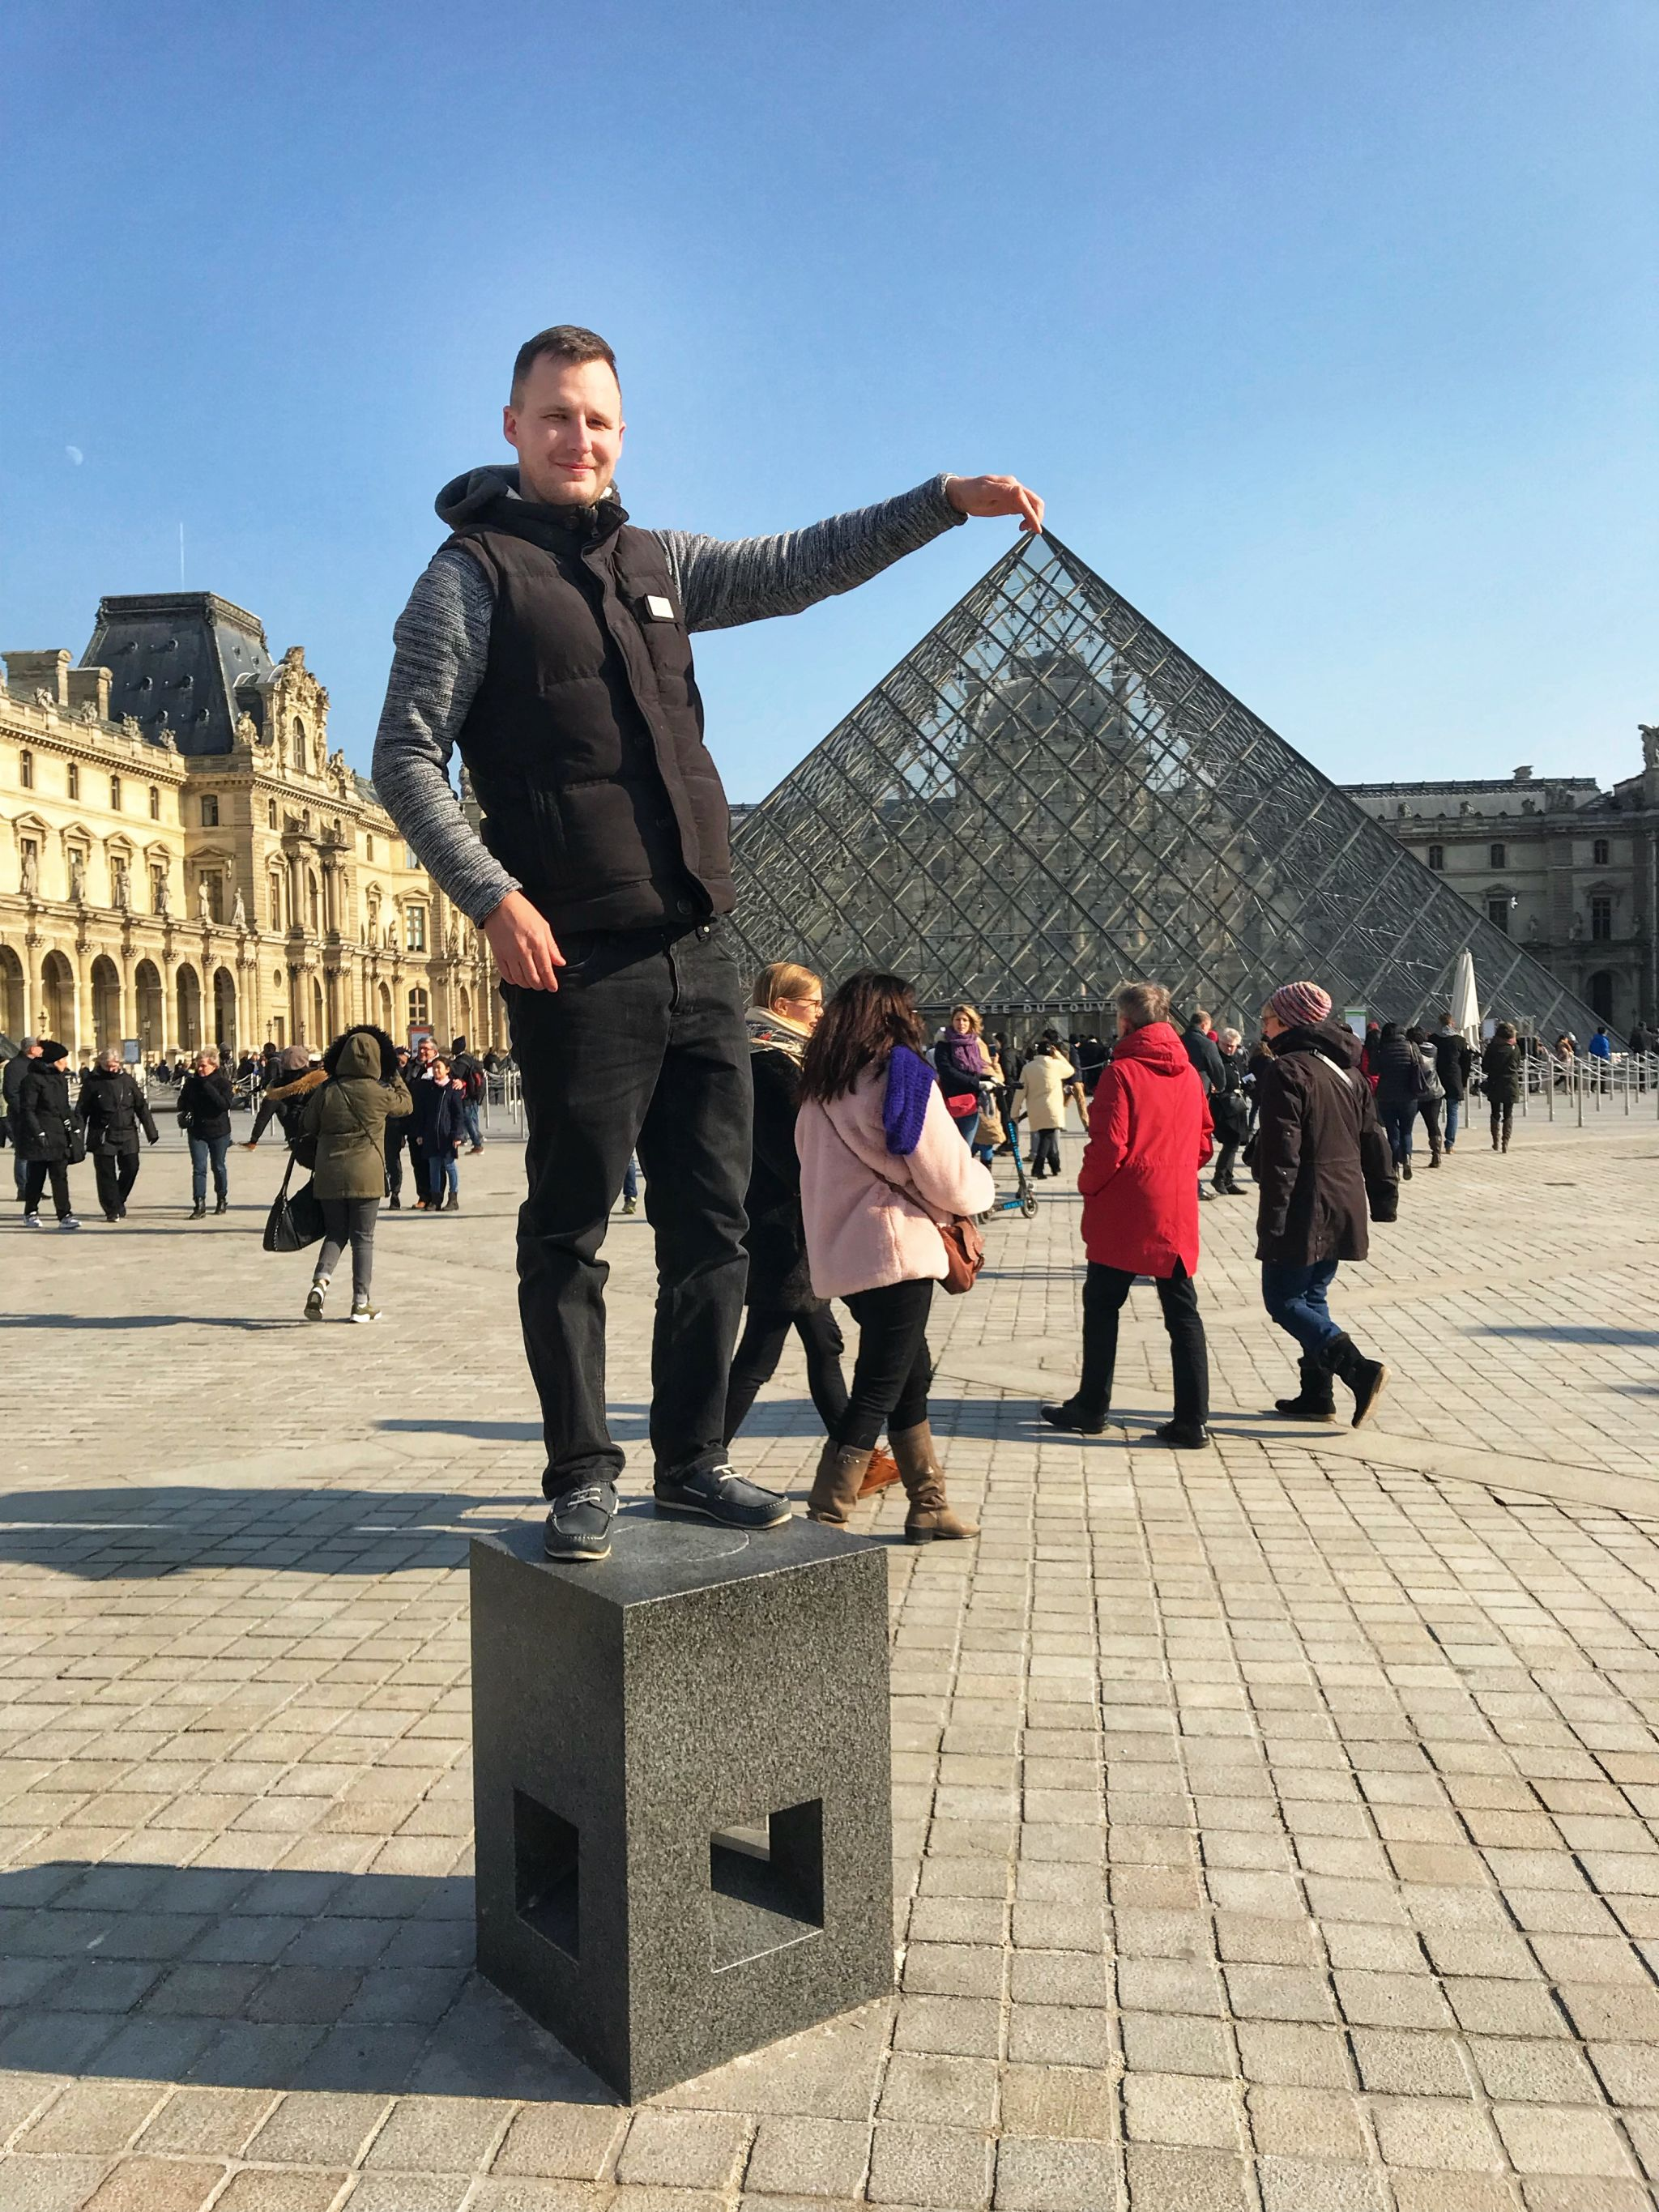 Adam at The Louvre